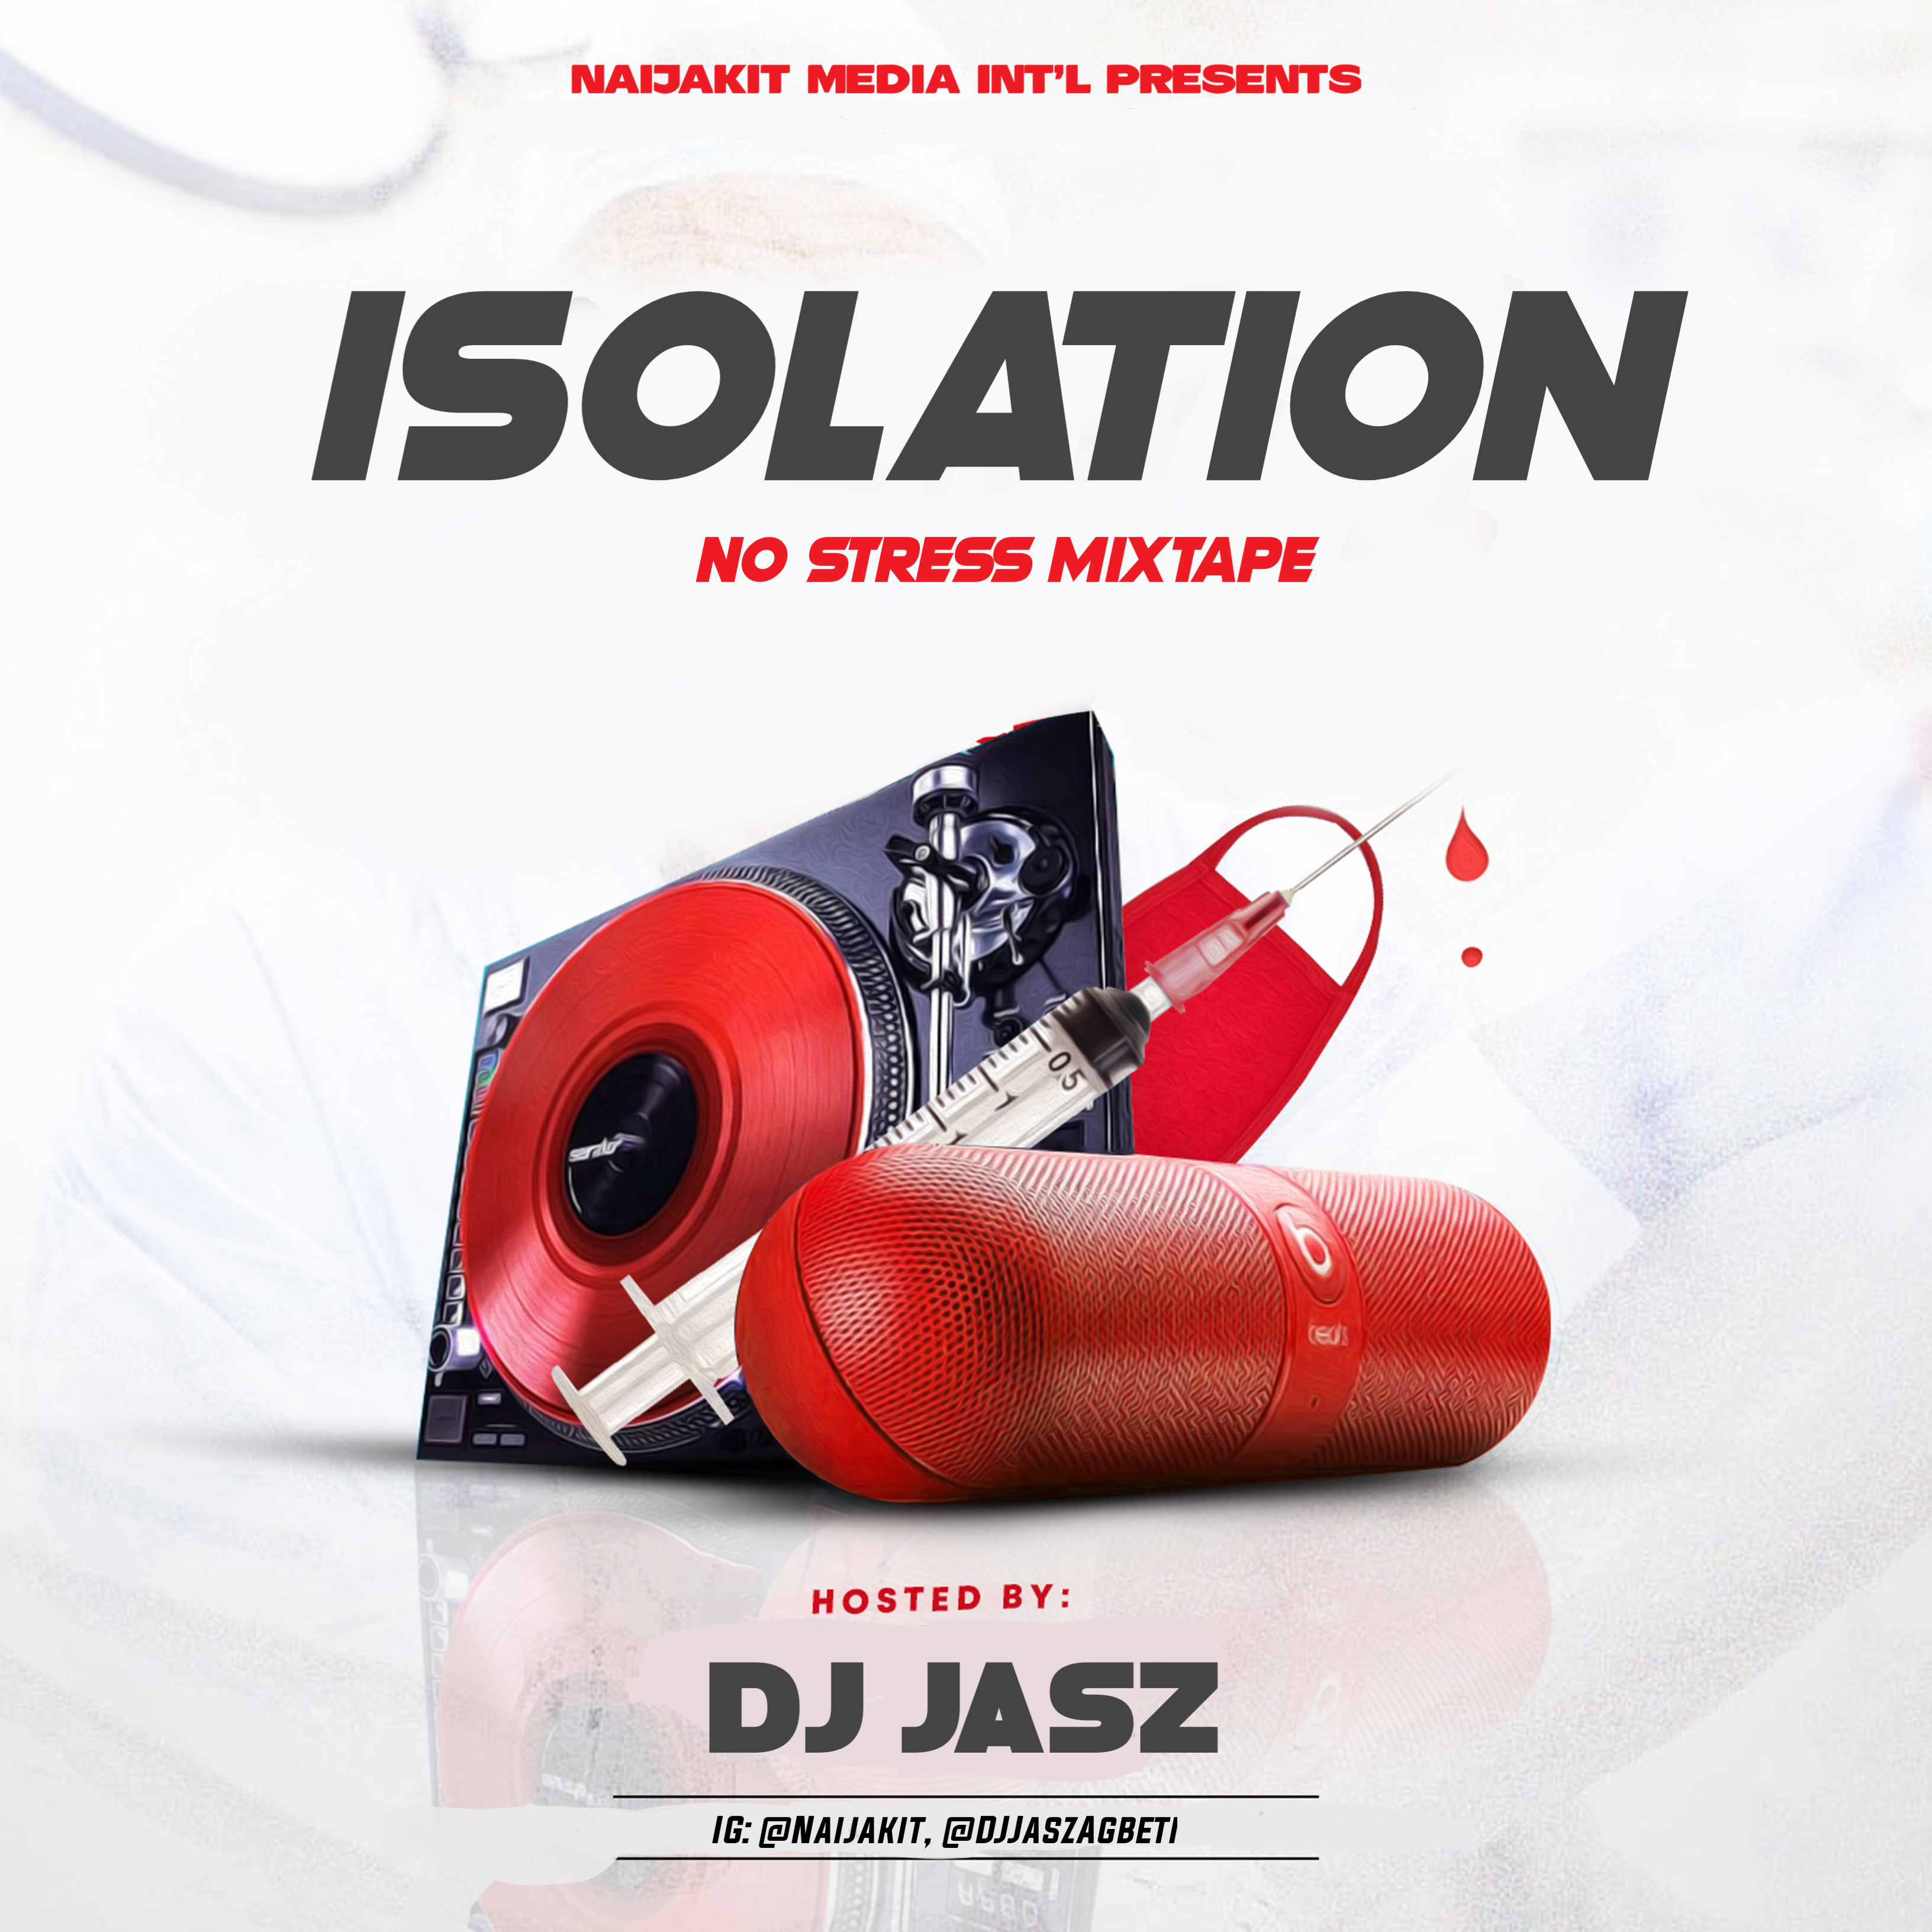 DJ Jasz - Isolation (Mixtape) #NoStressMix